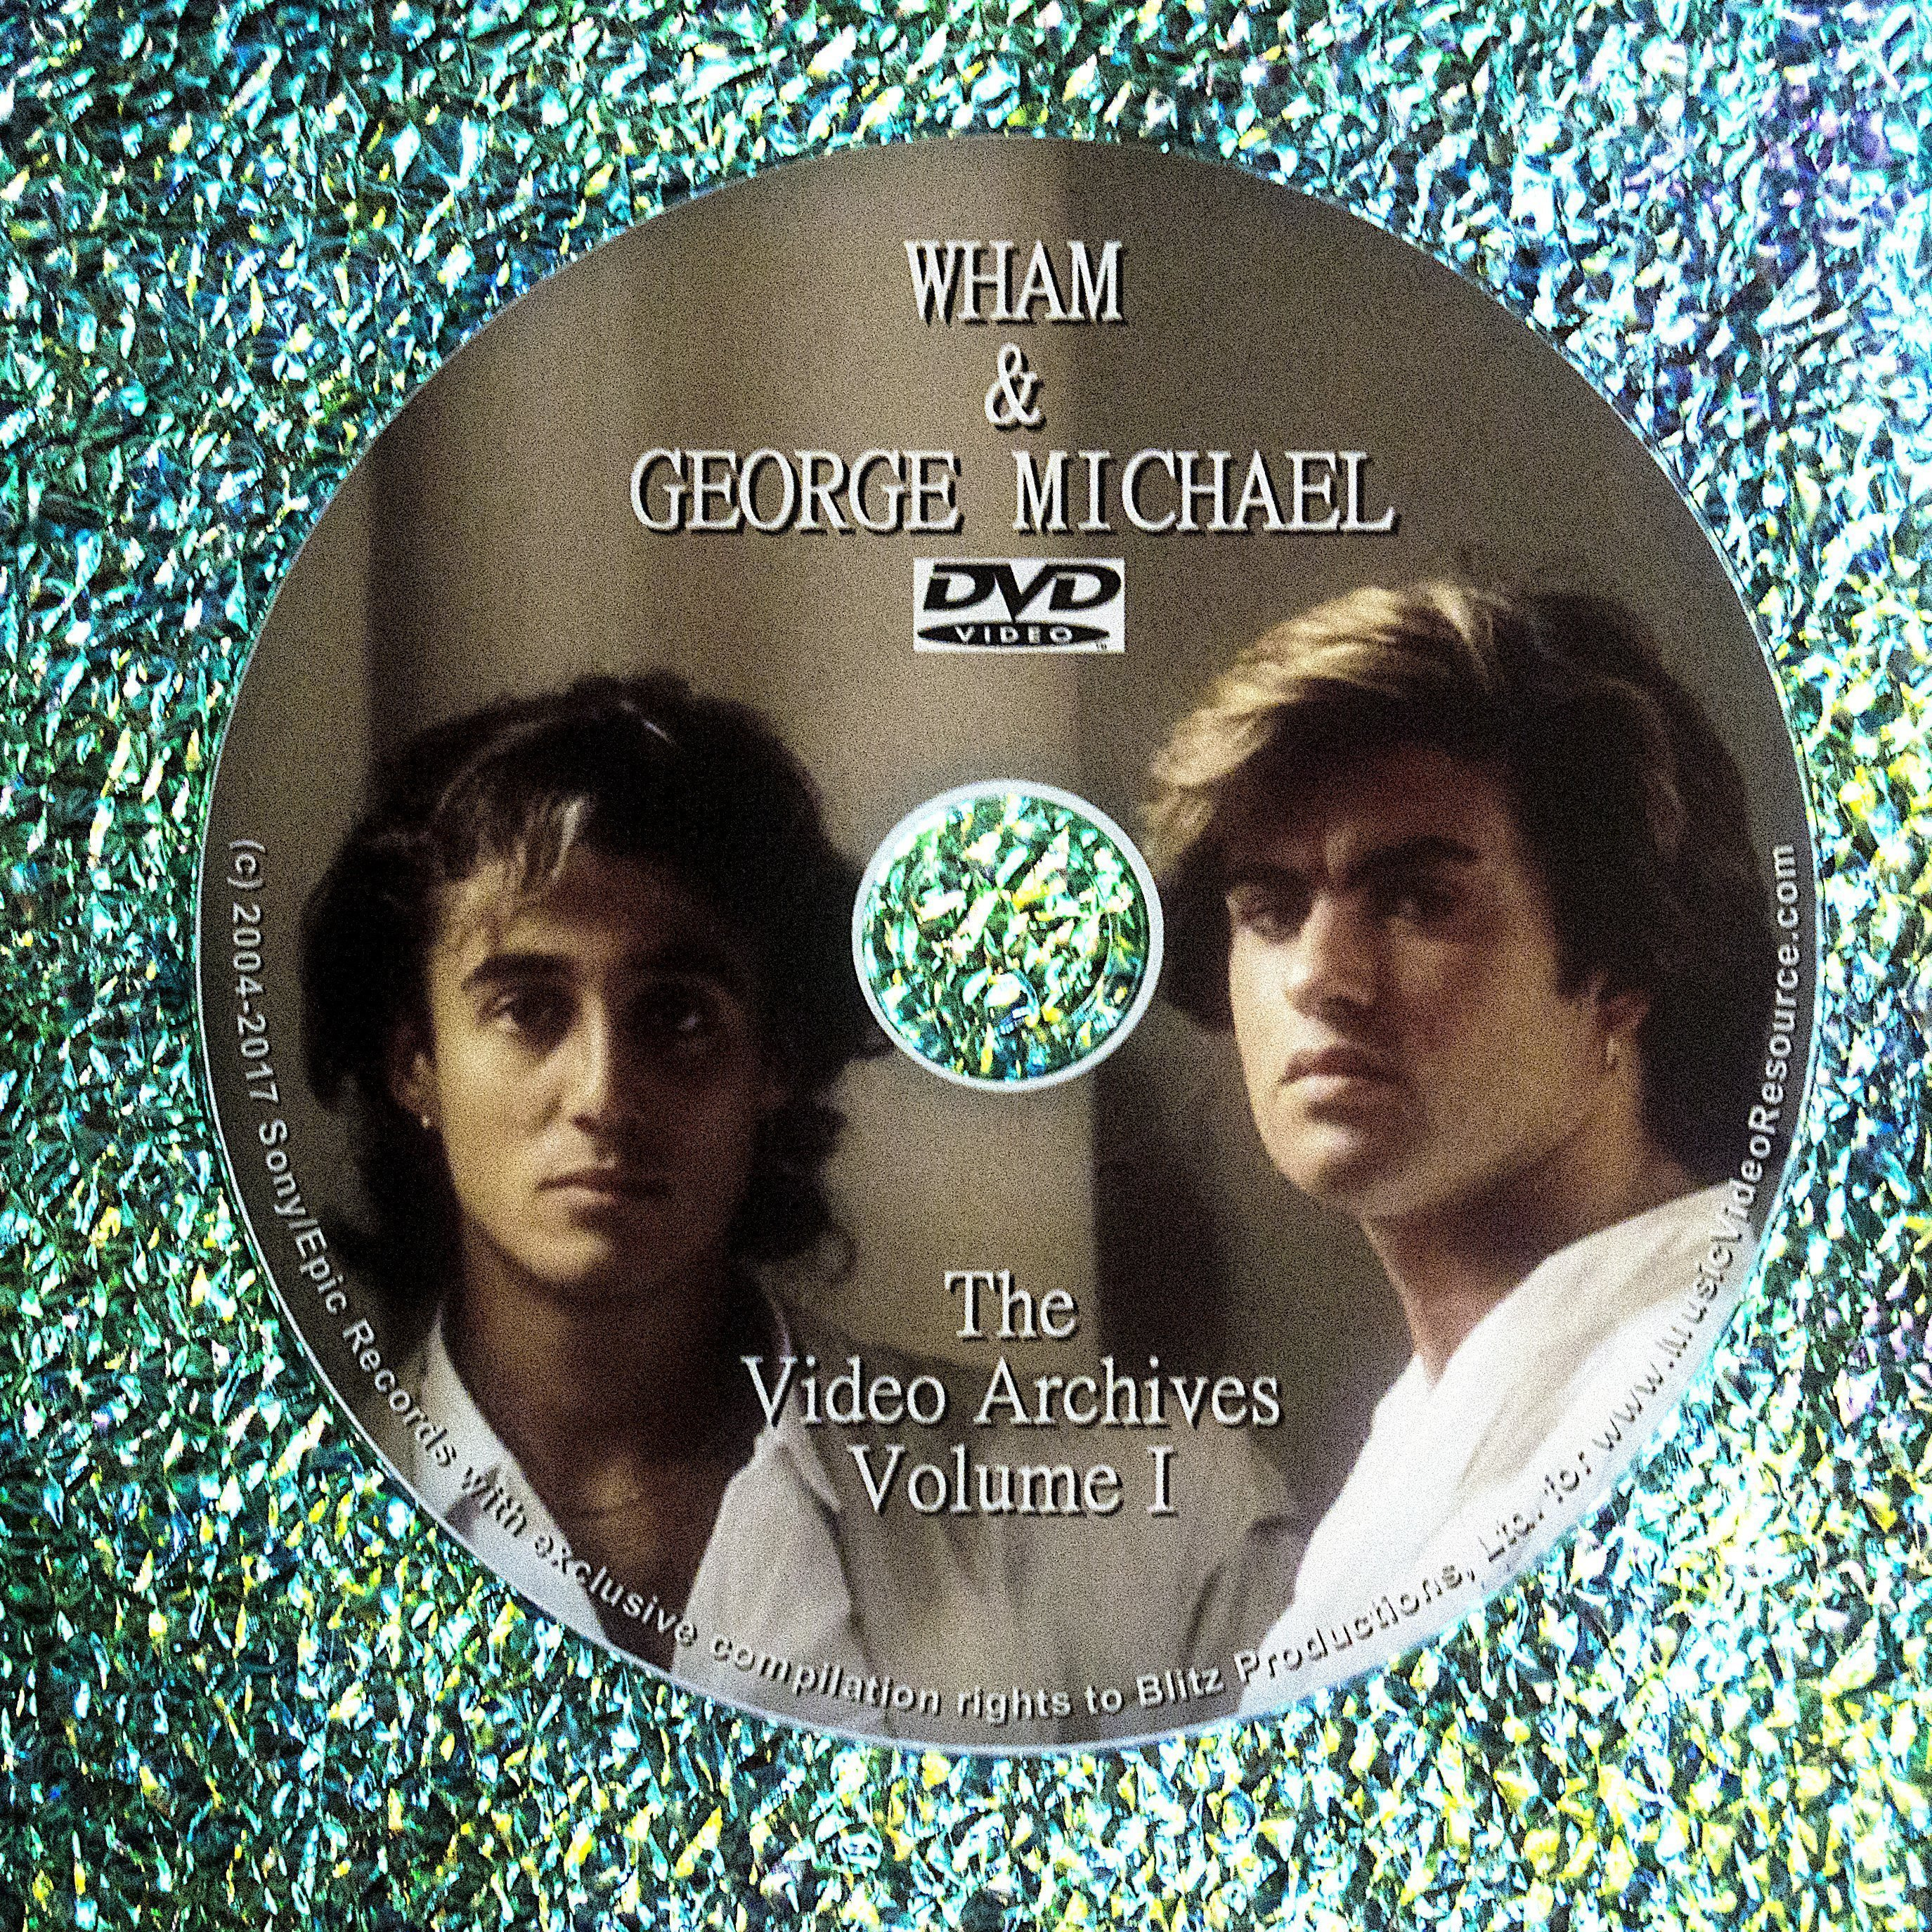 WHAM / George Michael: Live Performances Video Archives Volume I